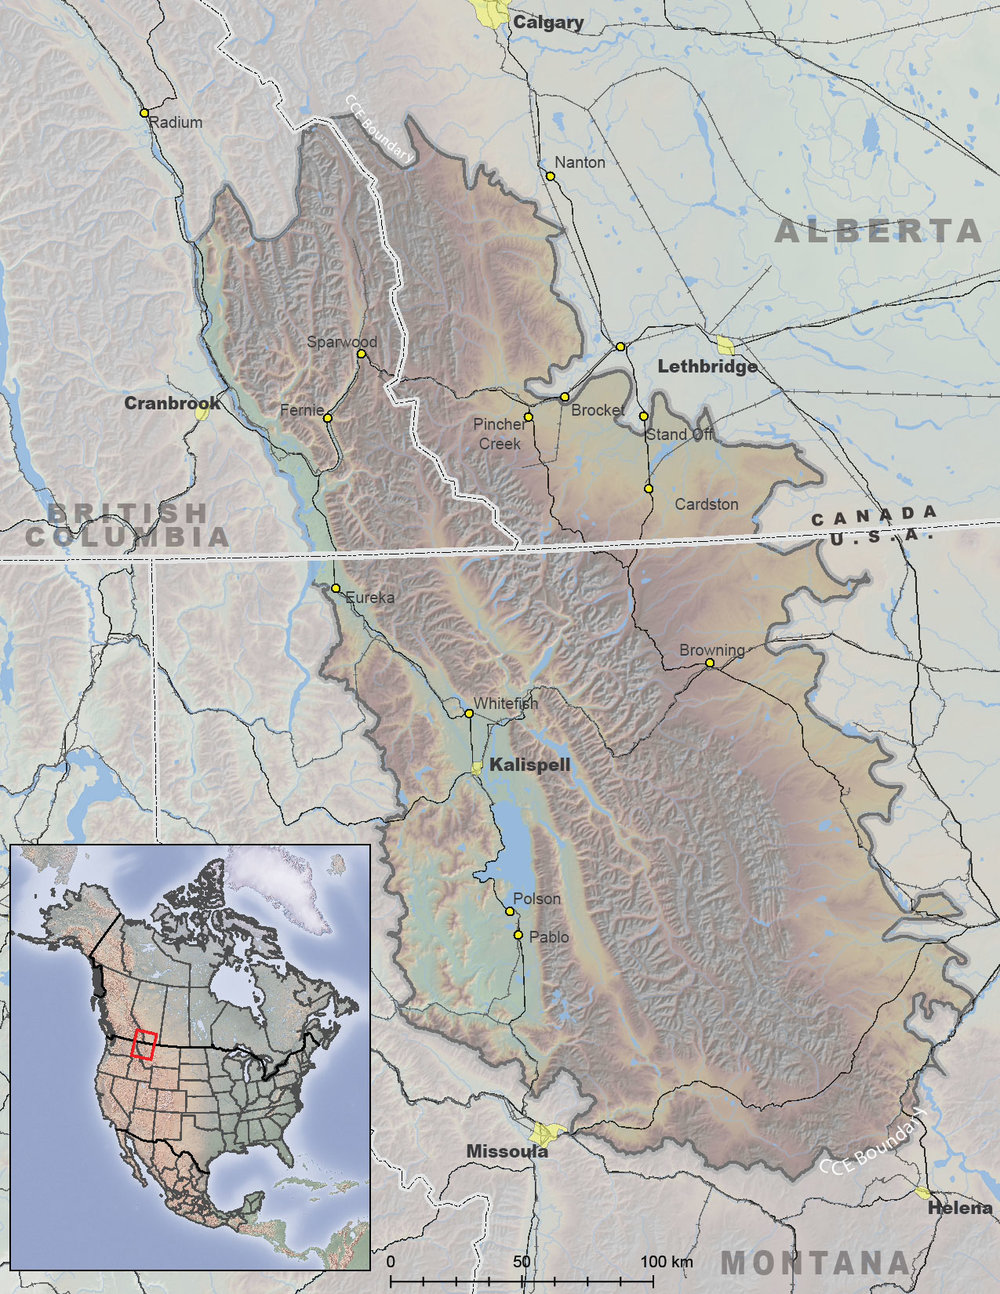 Location of the Crown of the Continent